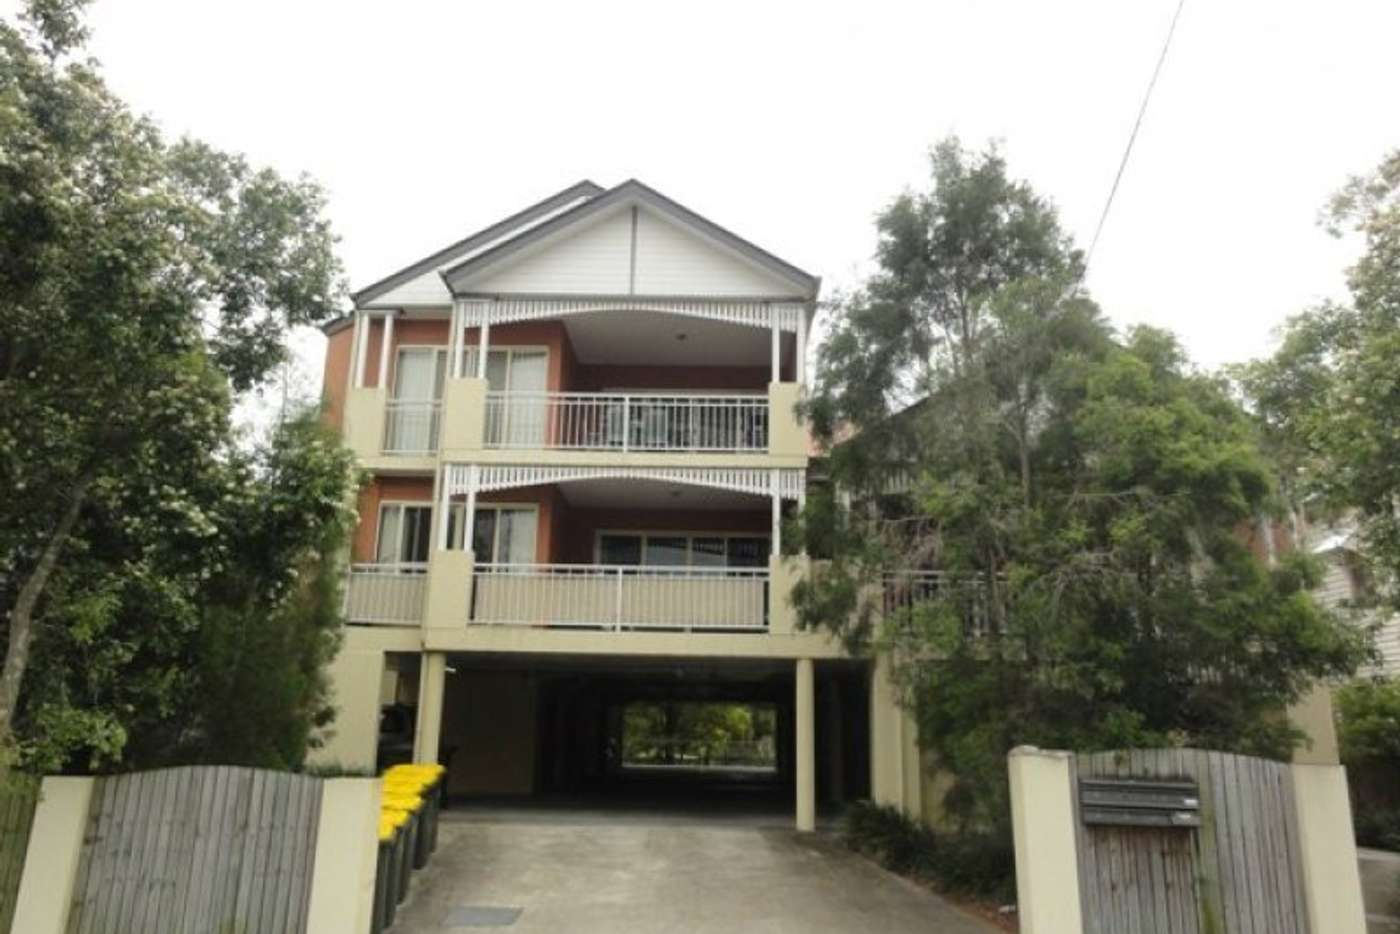 Main view of Homely unit listing, 4/18 Jellicoe Street, Coorparoo QLD 4151